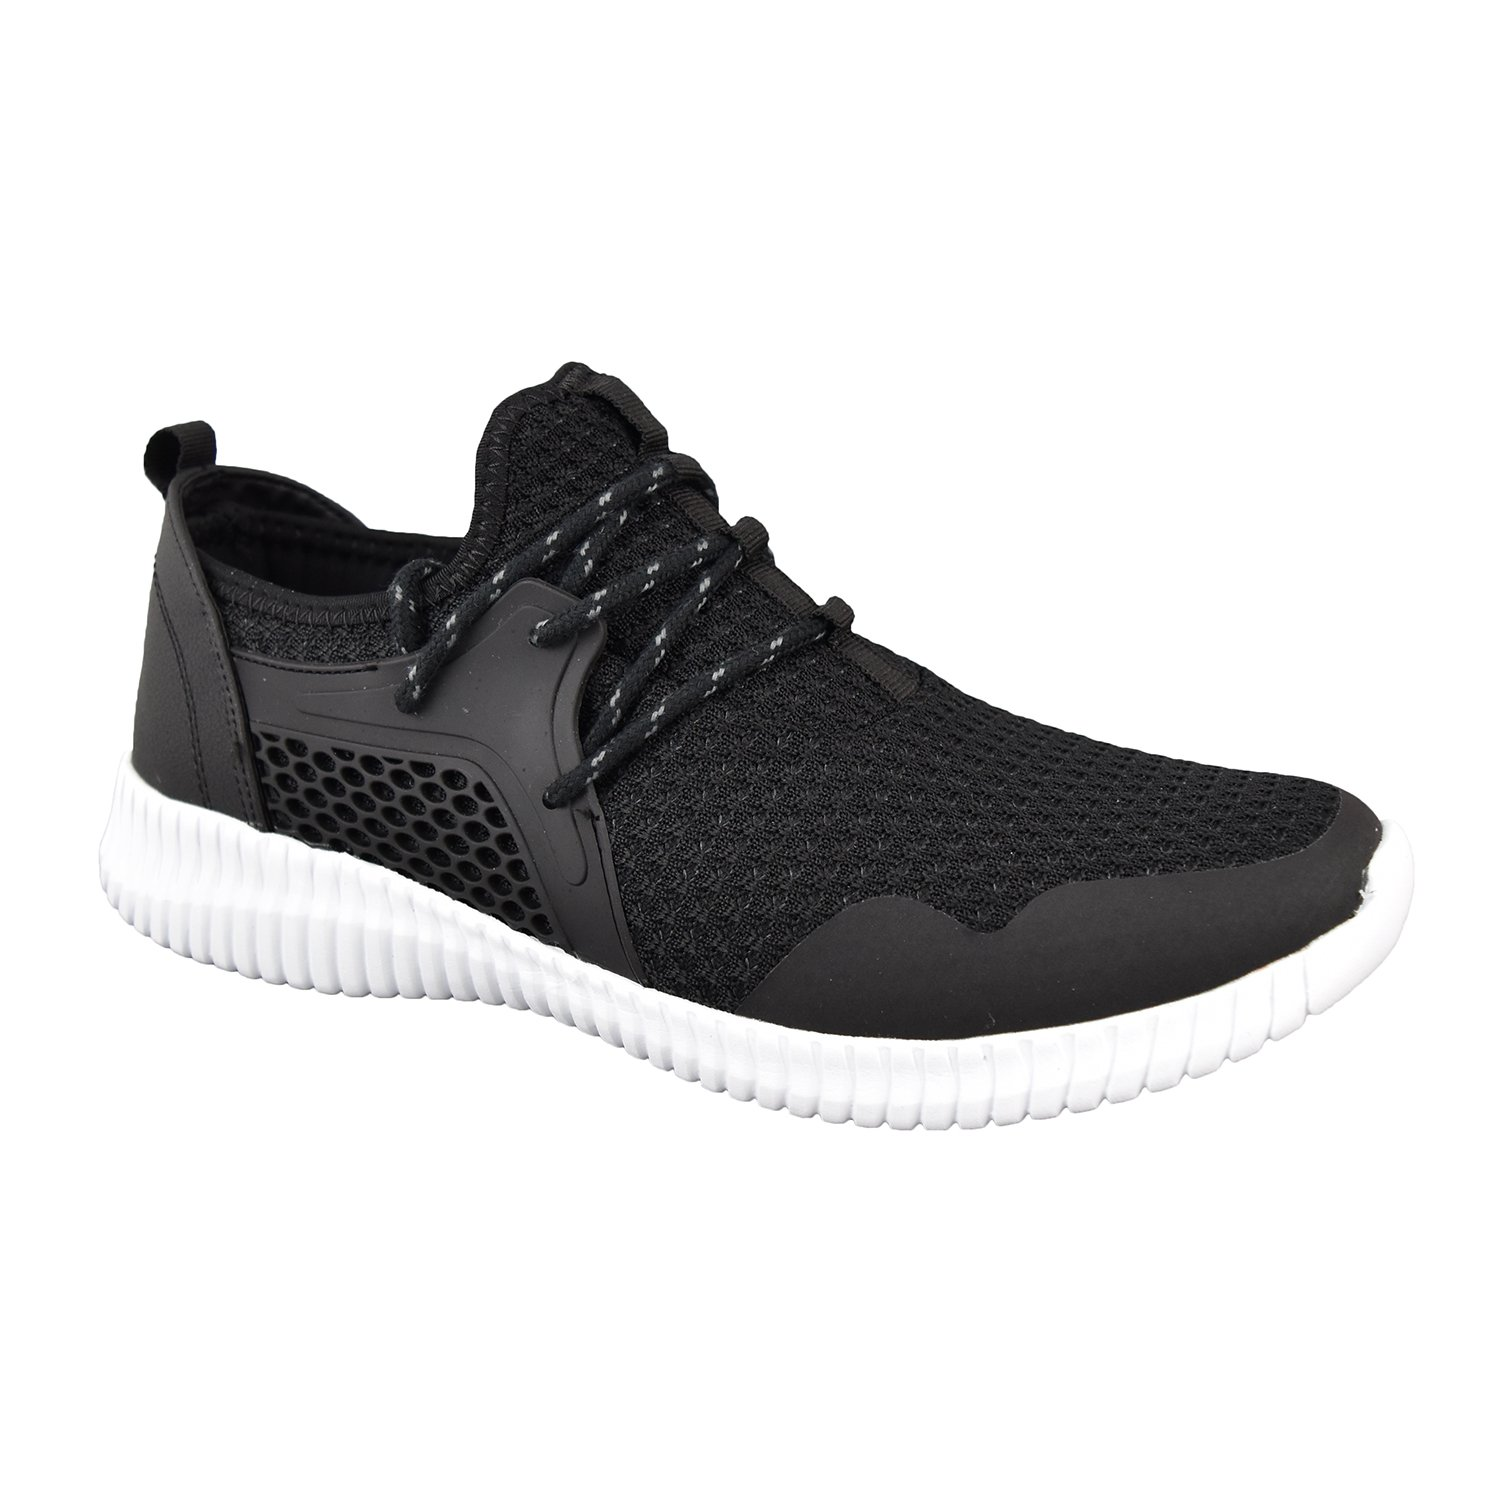 Rocky Moose Men's Breathable Comfortable Lace-up Running Shoes,Lightweight, Casual Sneakers - Miles II